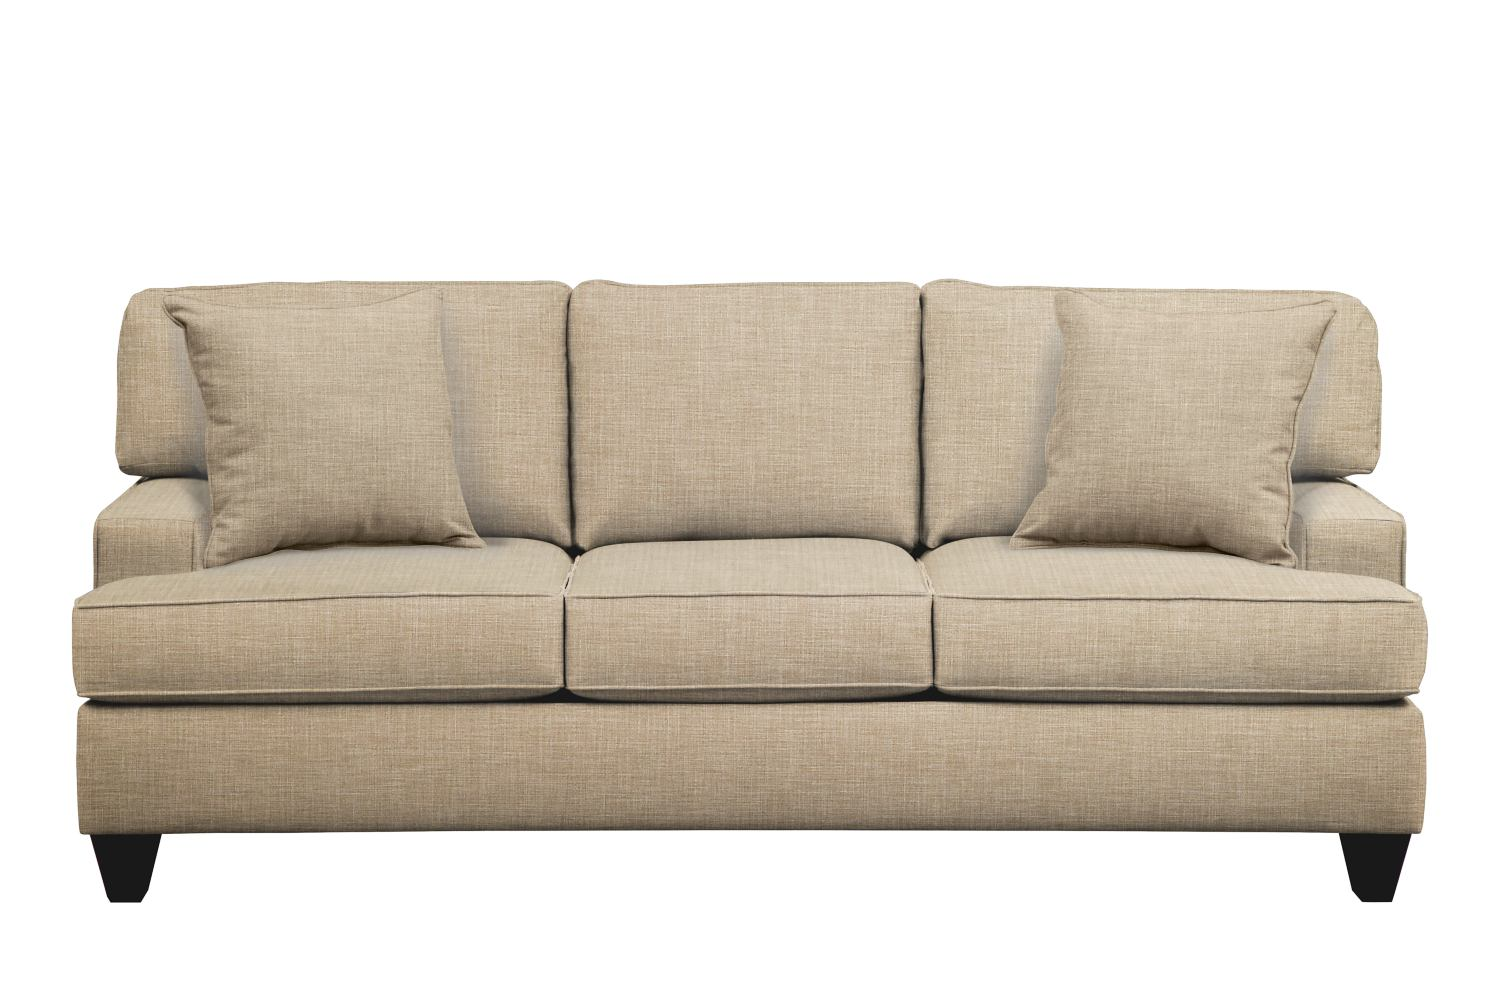 "Conner Track Arm Sofa 87"" Milford II Toast w/ Milford II Toast  Pillow"